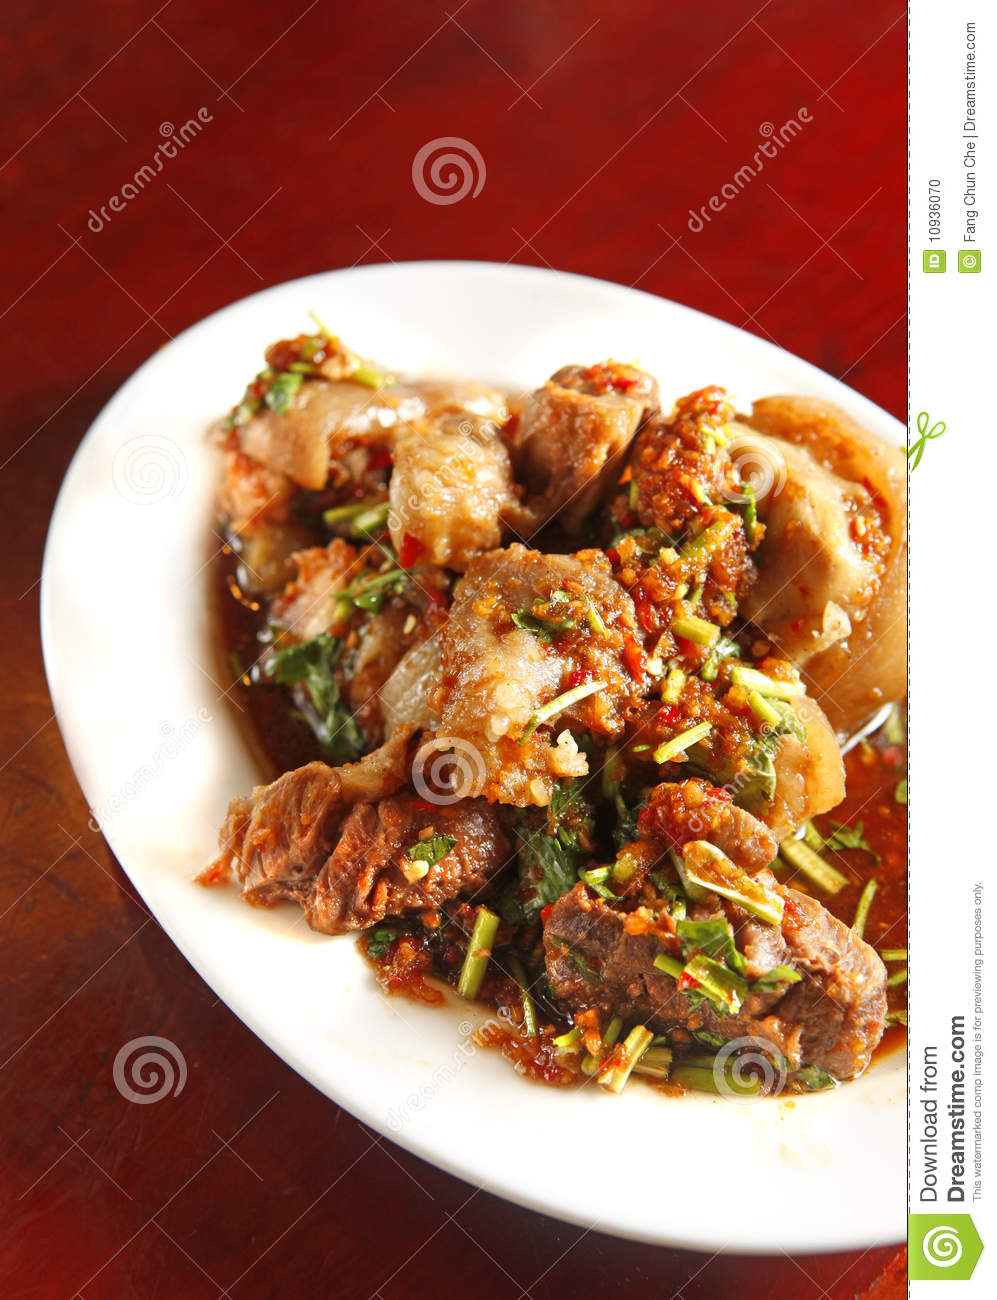 Chinese food, pork meal